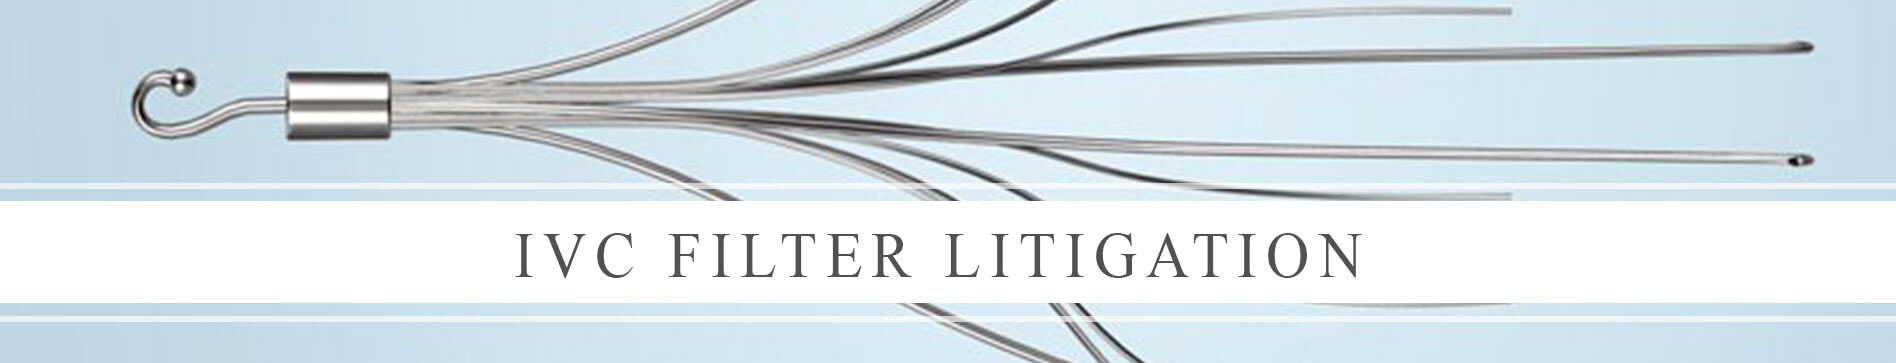 IVC Filter Litigation Lawyers in Texas